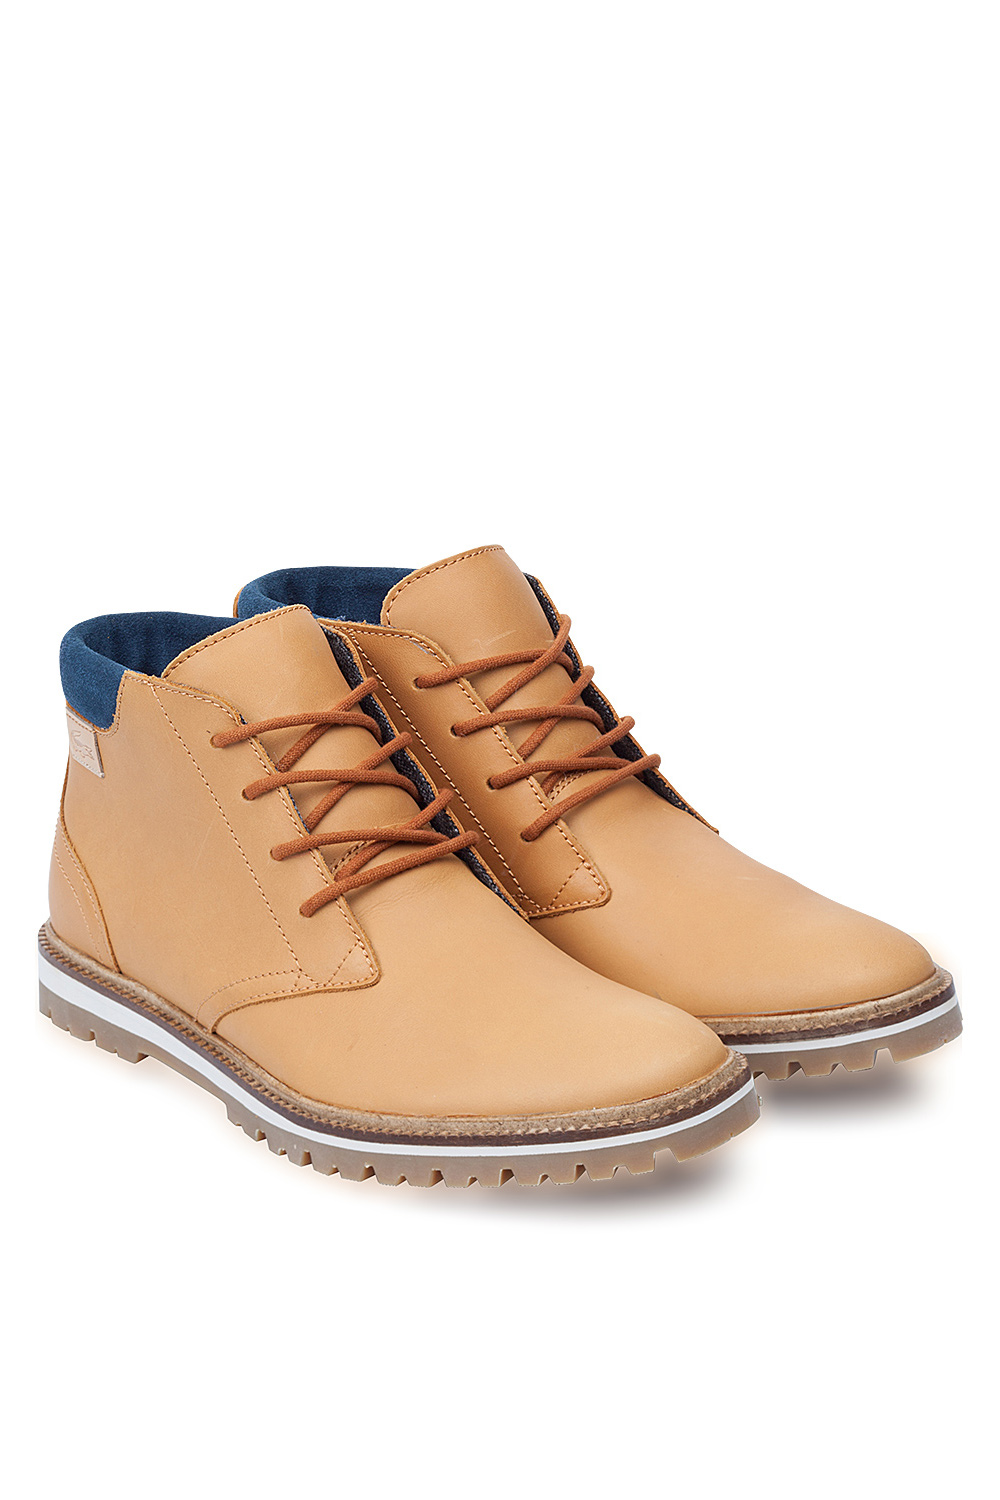 34a05616d99891 Lacoste Montbard Chukka Srm Boots Taba